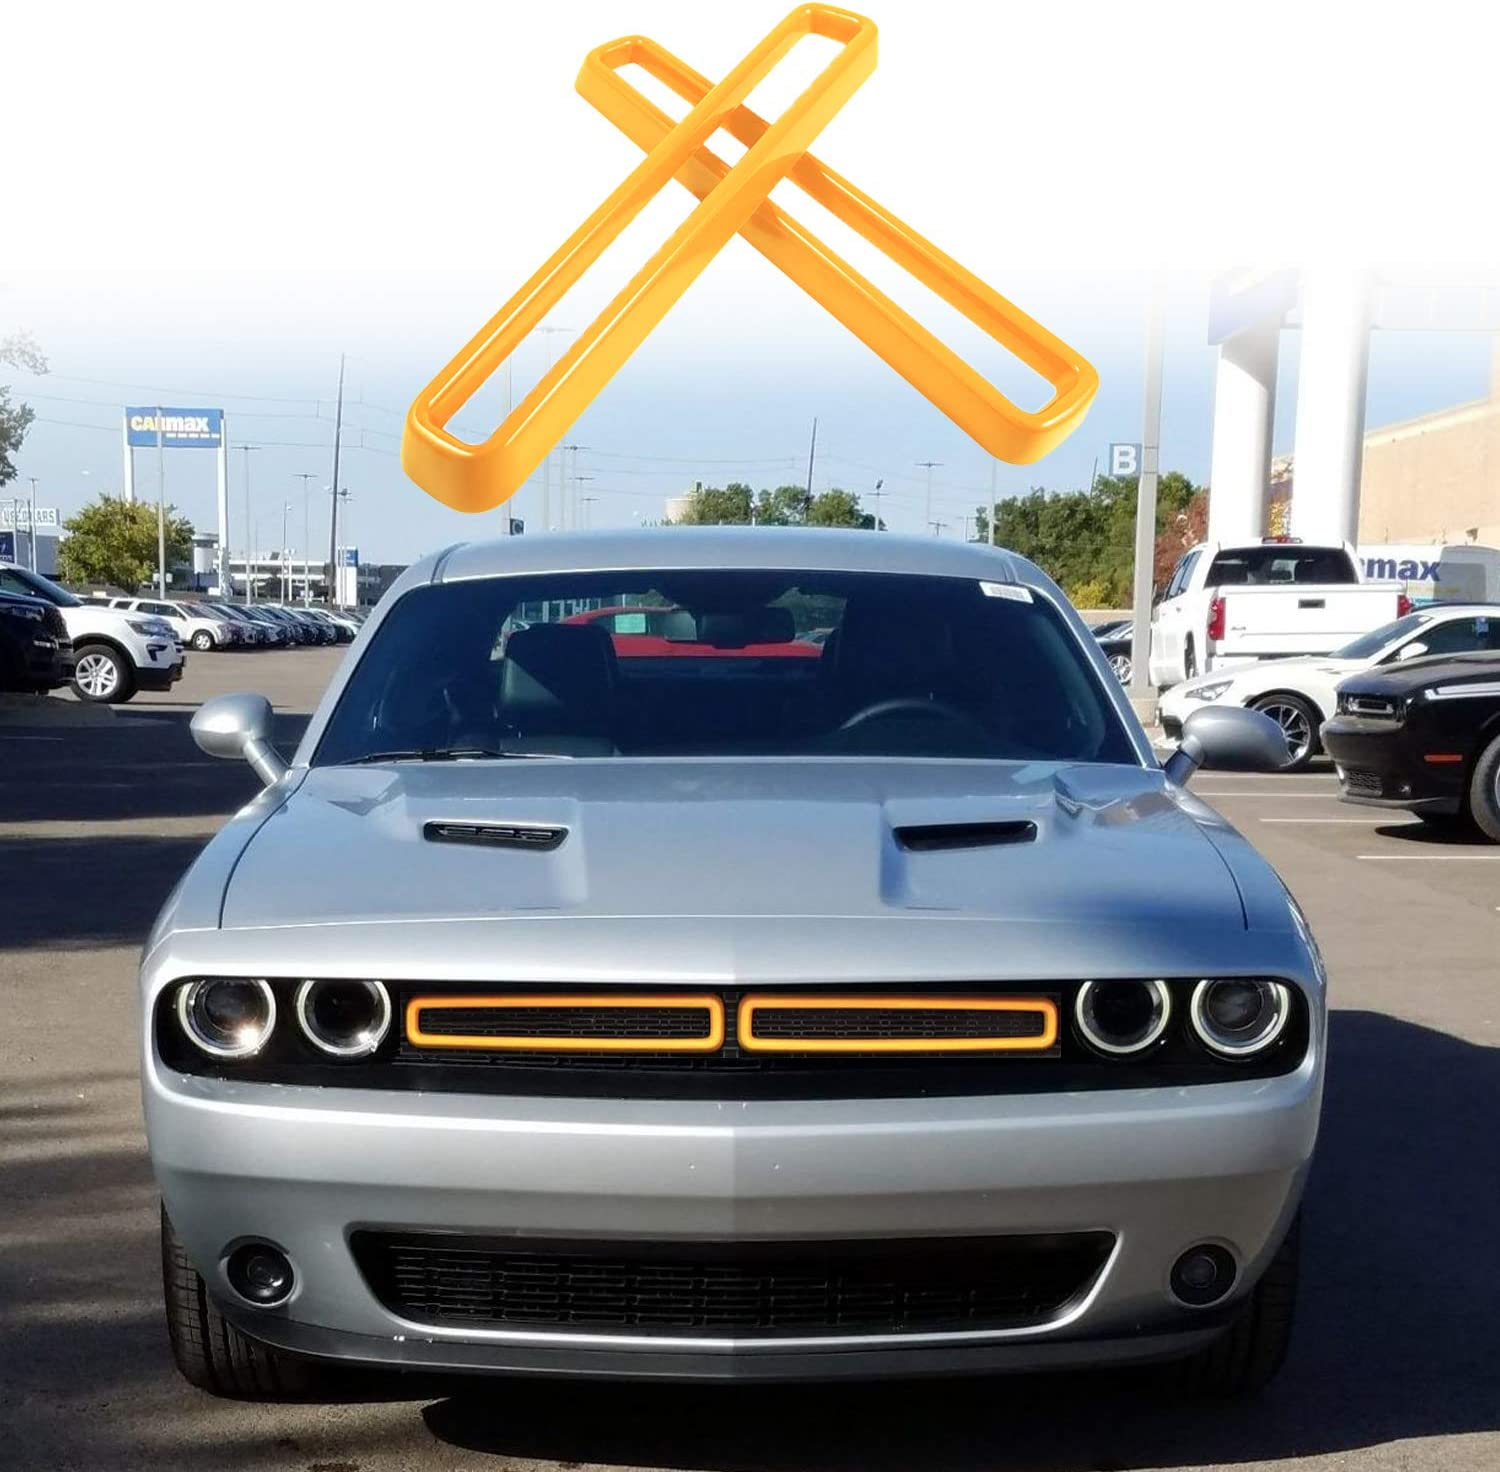 Bonbo Front Grill Grille Inserts Attention brand Cover Max 89% OFF Trim Kit 2015-202 fit for